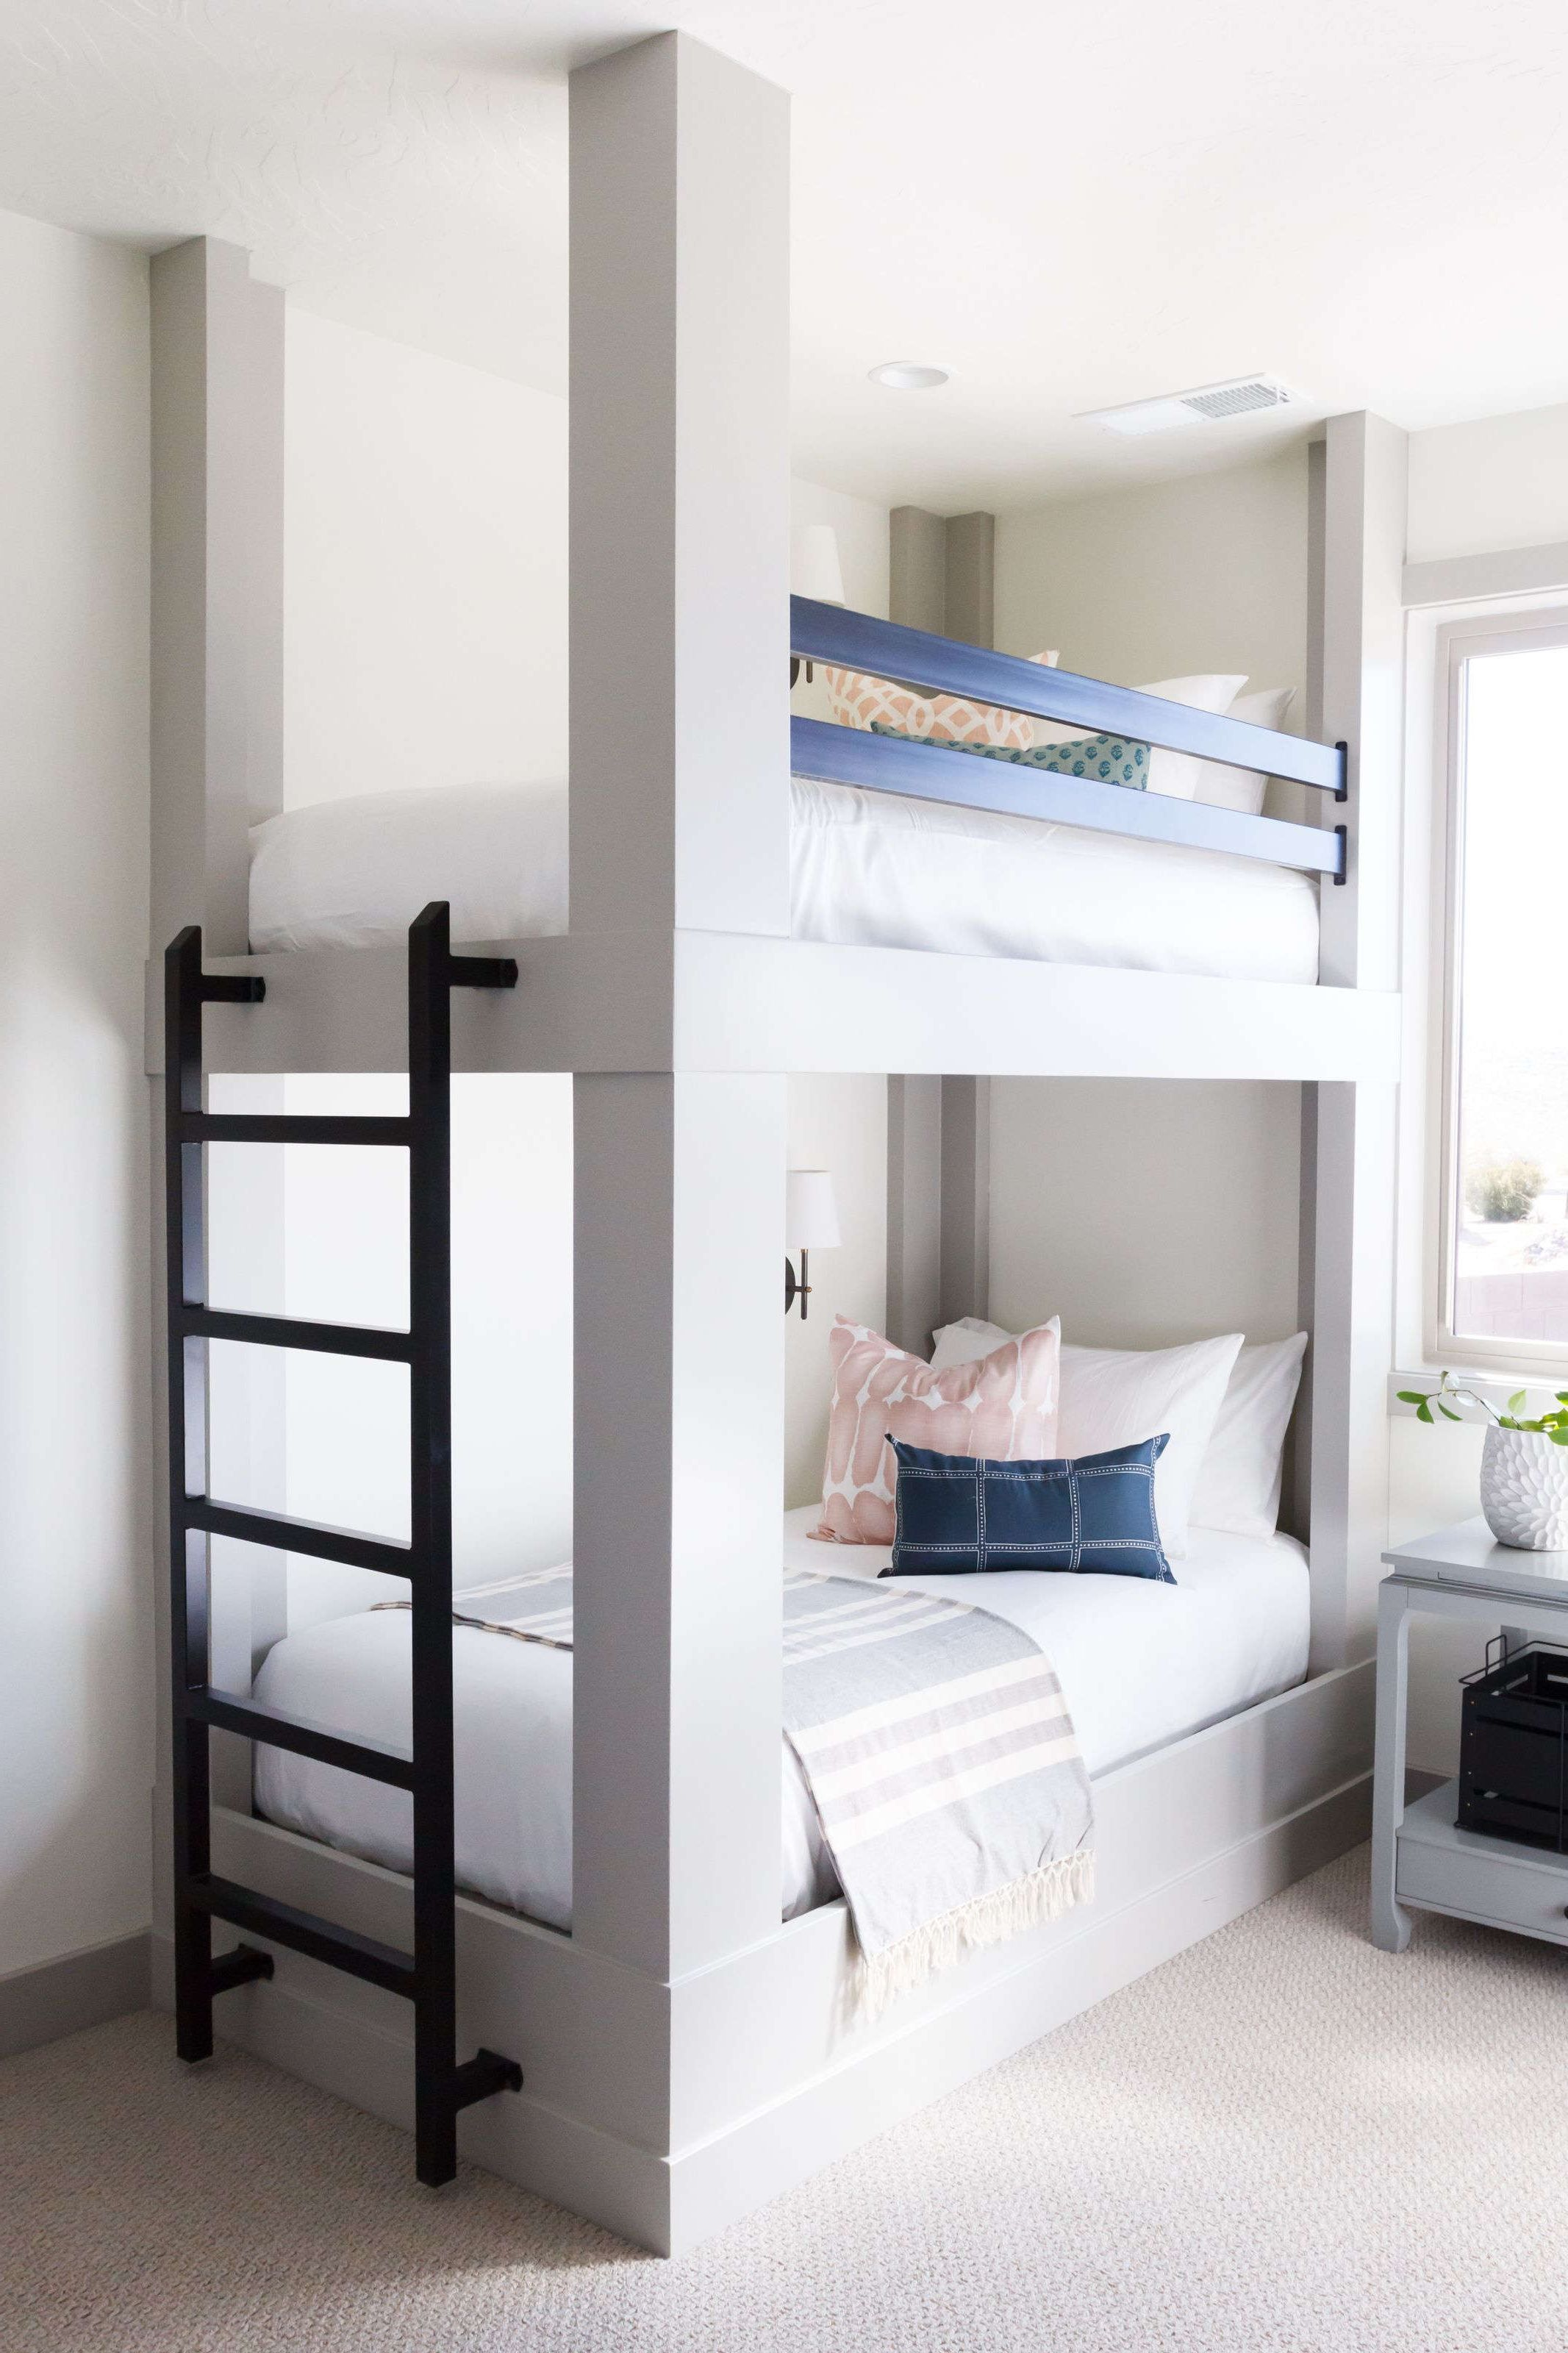 50 Amazing Contemporary Bunk Bed Ideas Decor Around The World Contemporary Bunk Beds Bunk Beds For Girls Room Bed